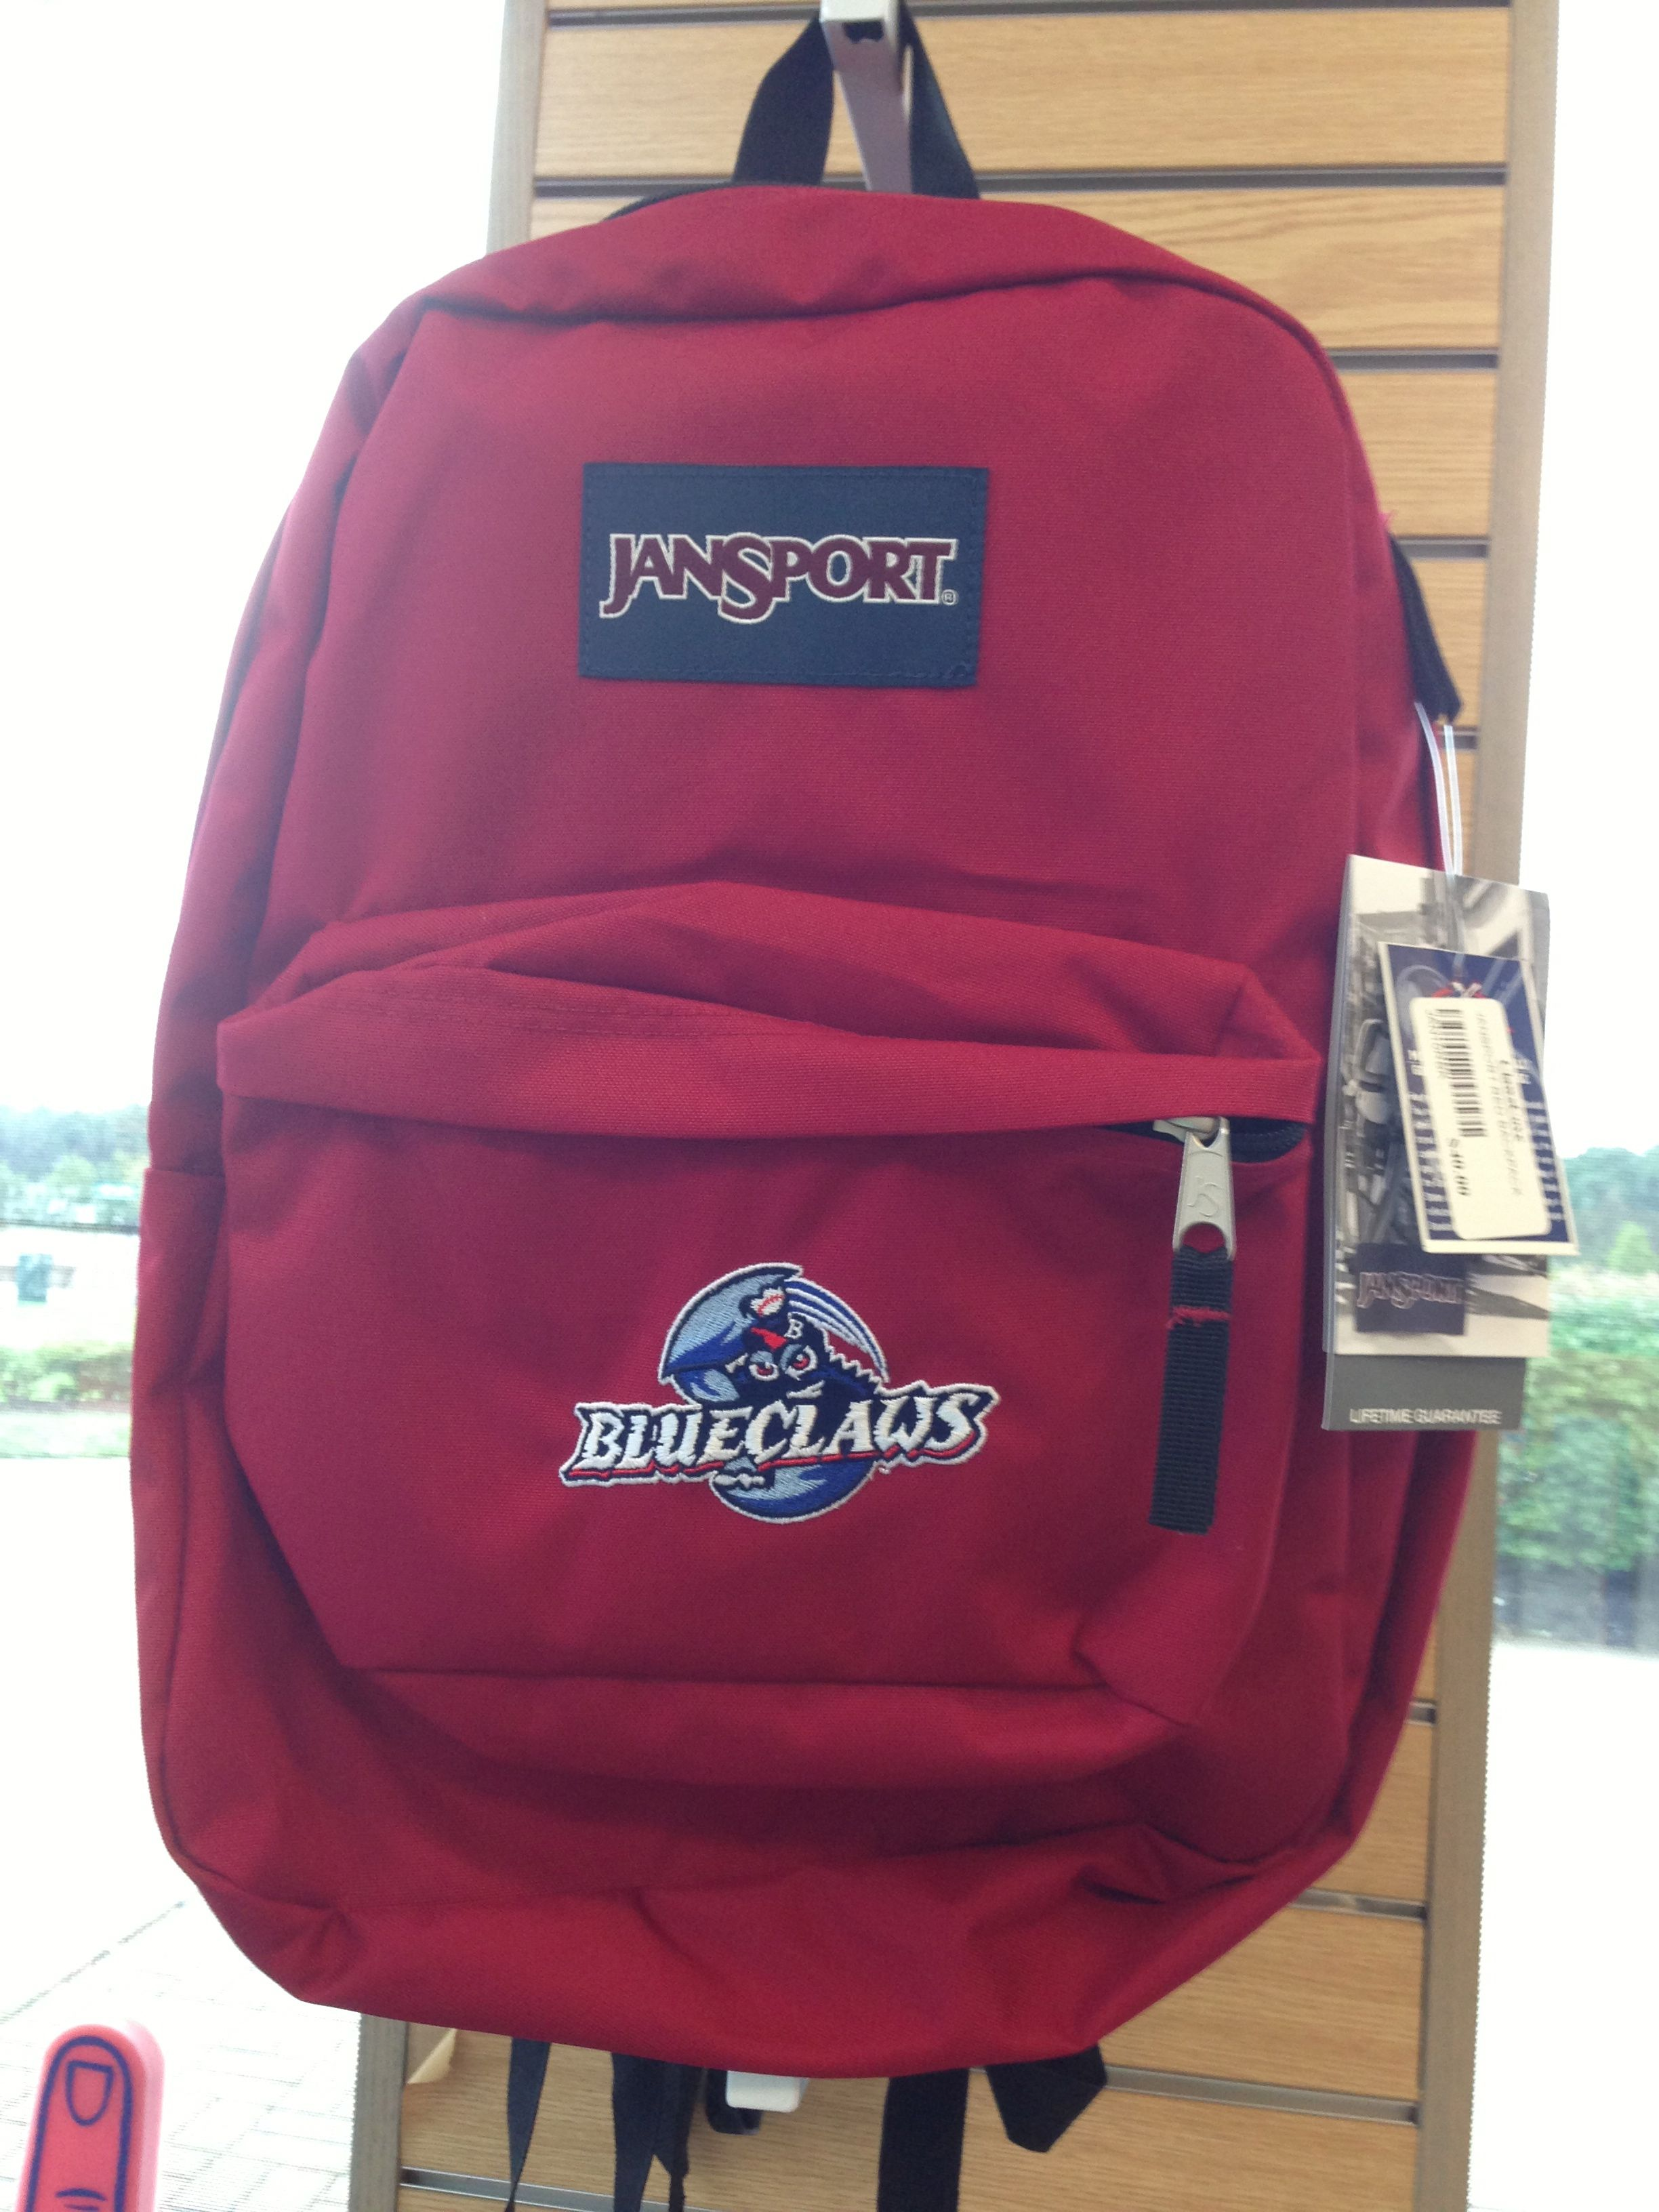 BlueClaws backpack perfect for going back to school!